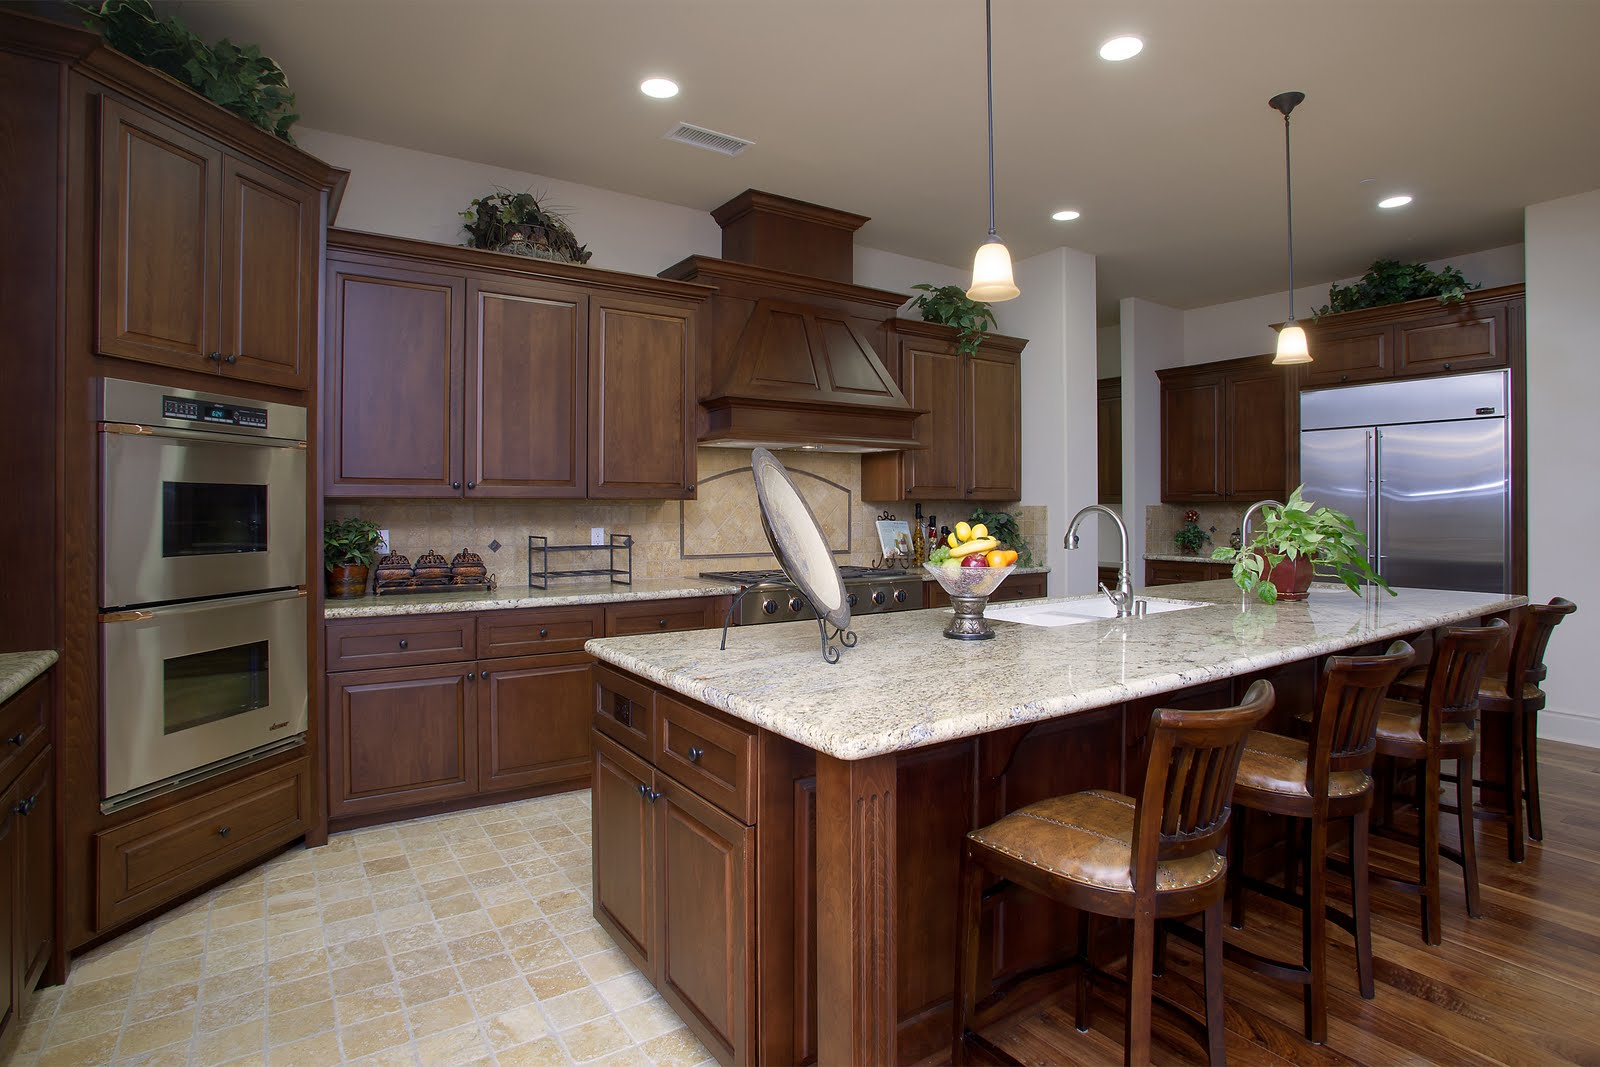 Kitchens by MDD on Model Kitchens  id=13686